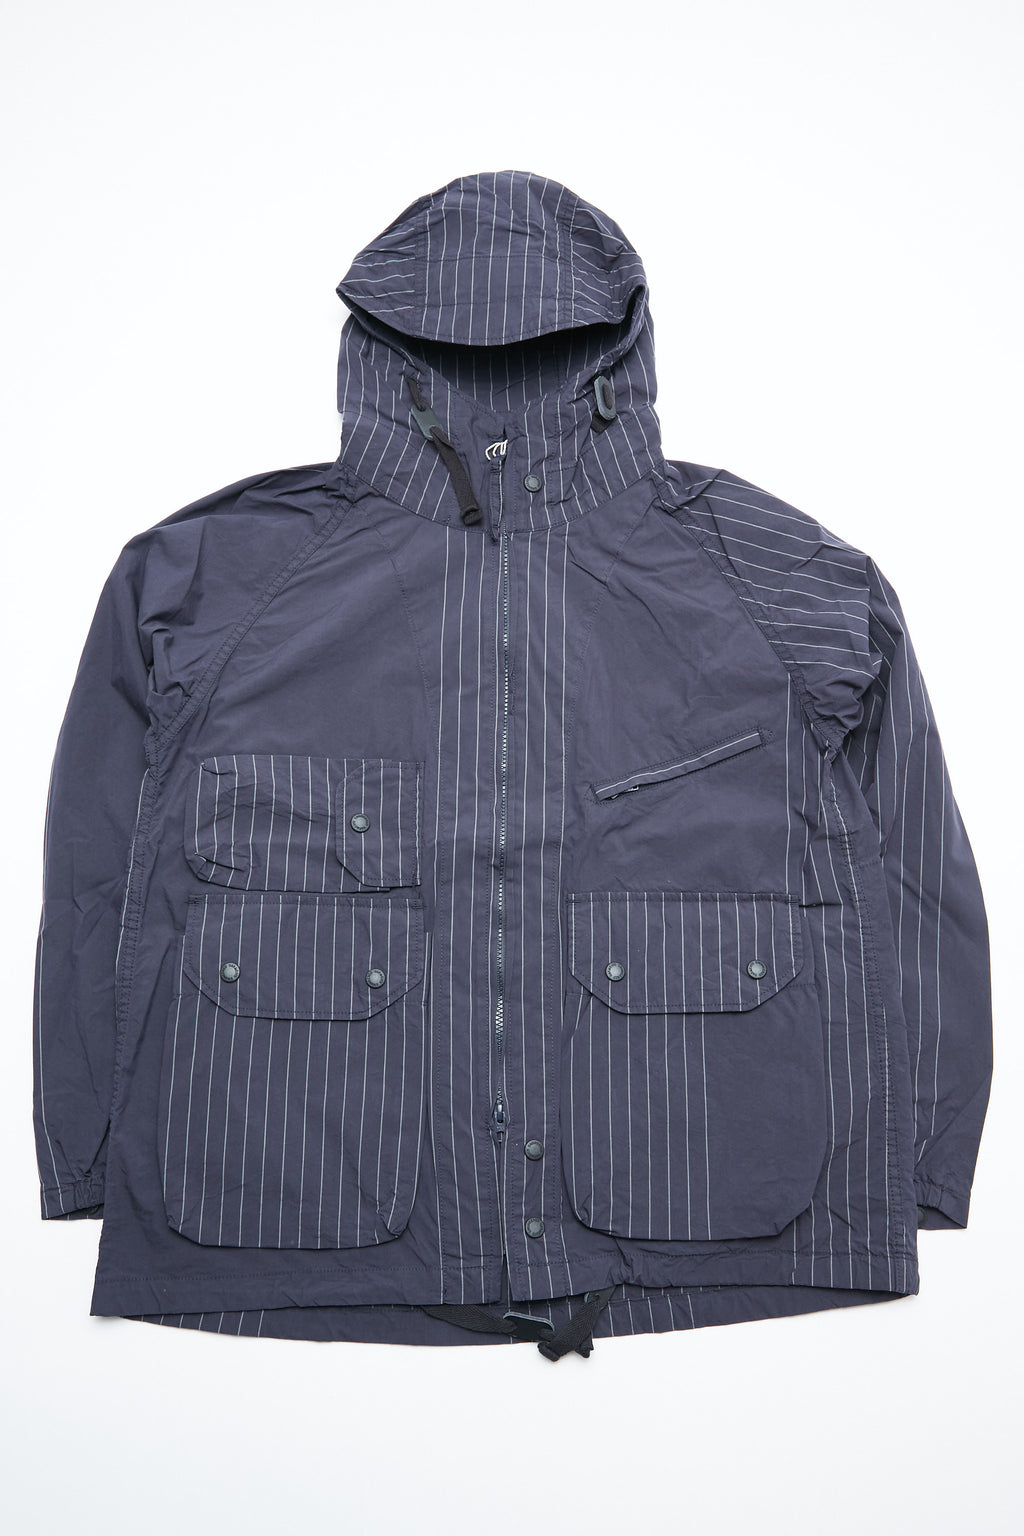 Engineered Garments Atlantic Parka - Dk. Navy Nyco Gangster Stripe